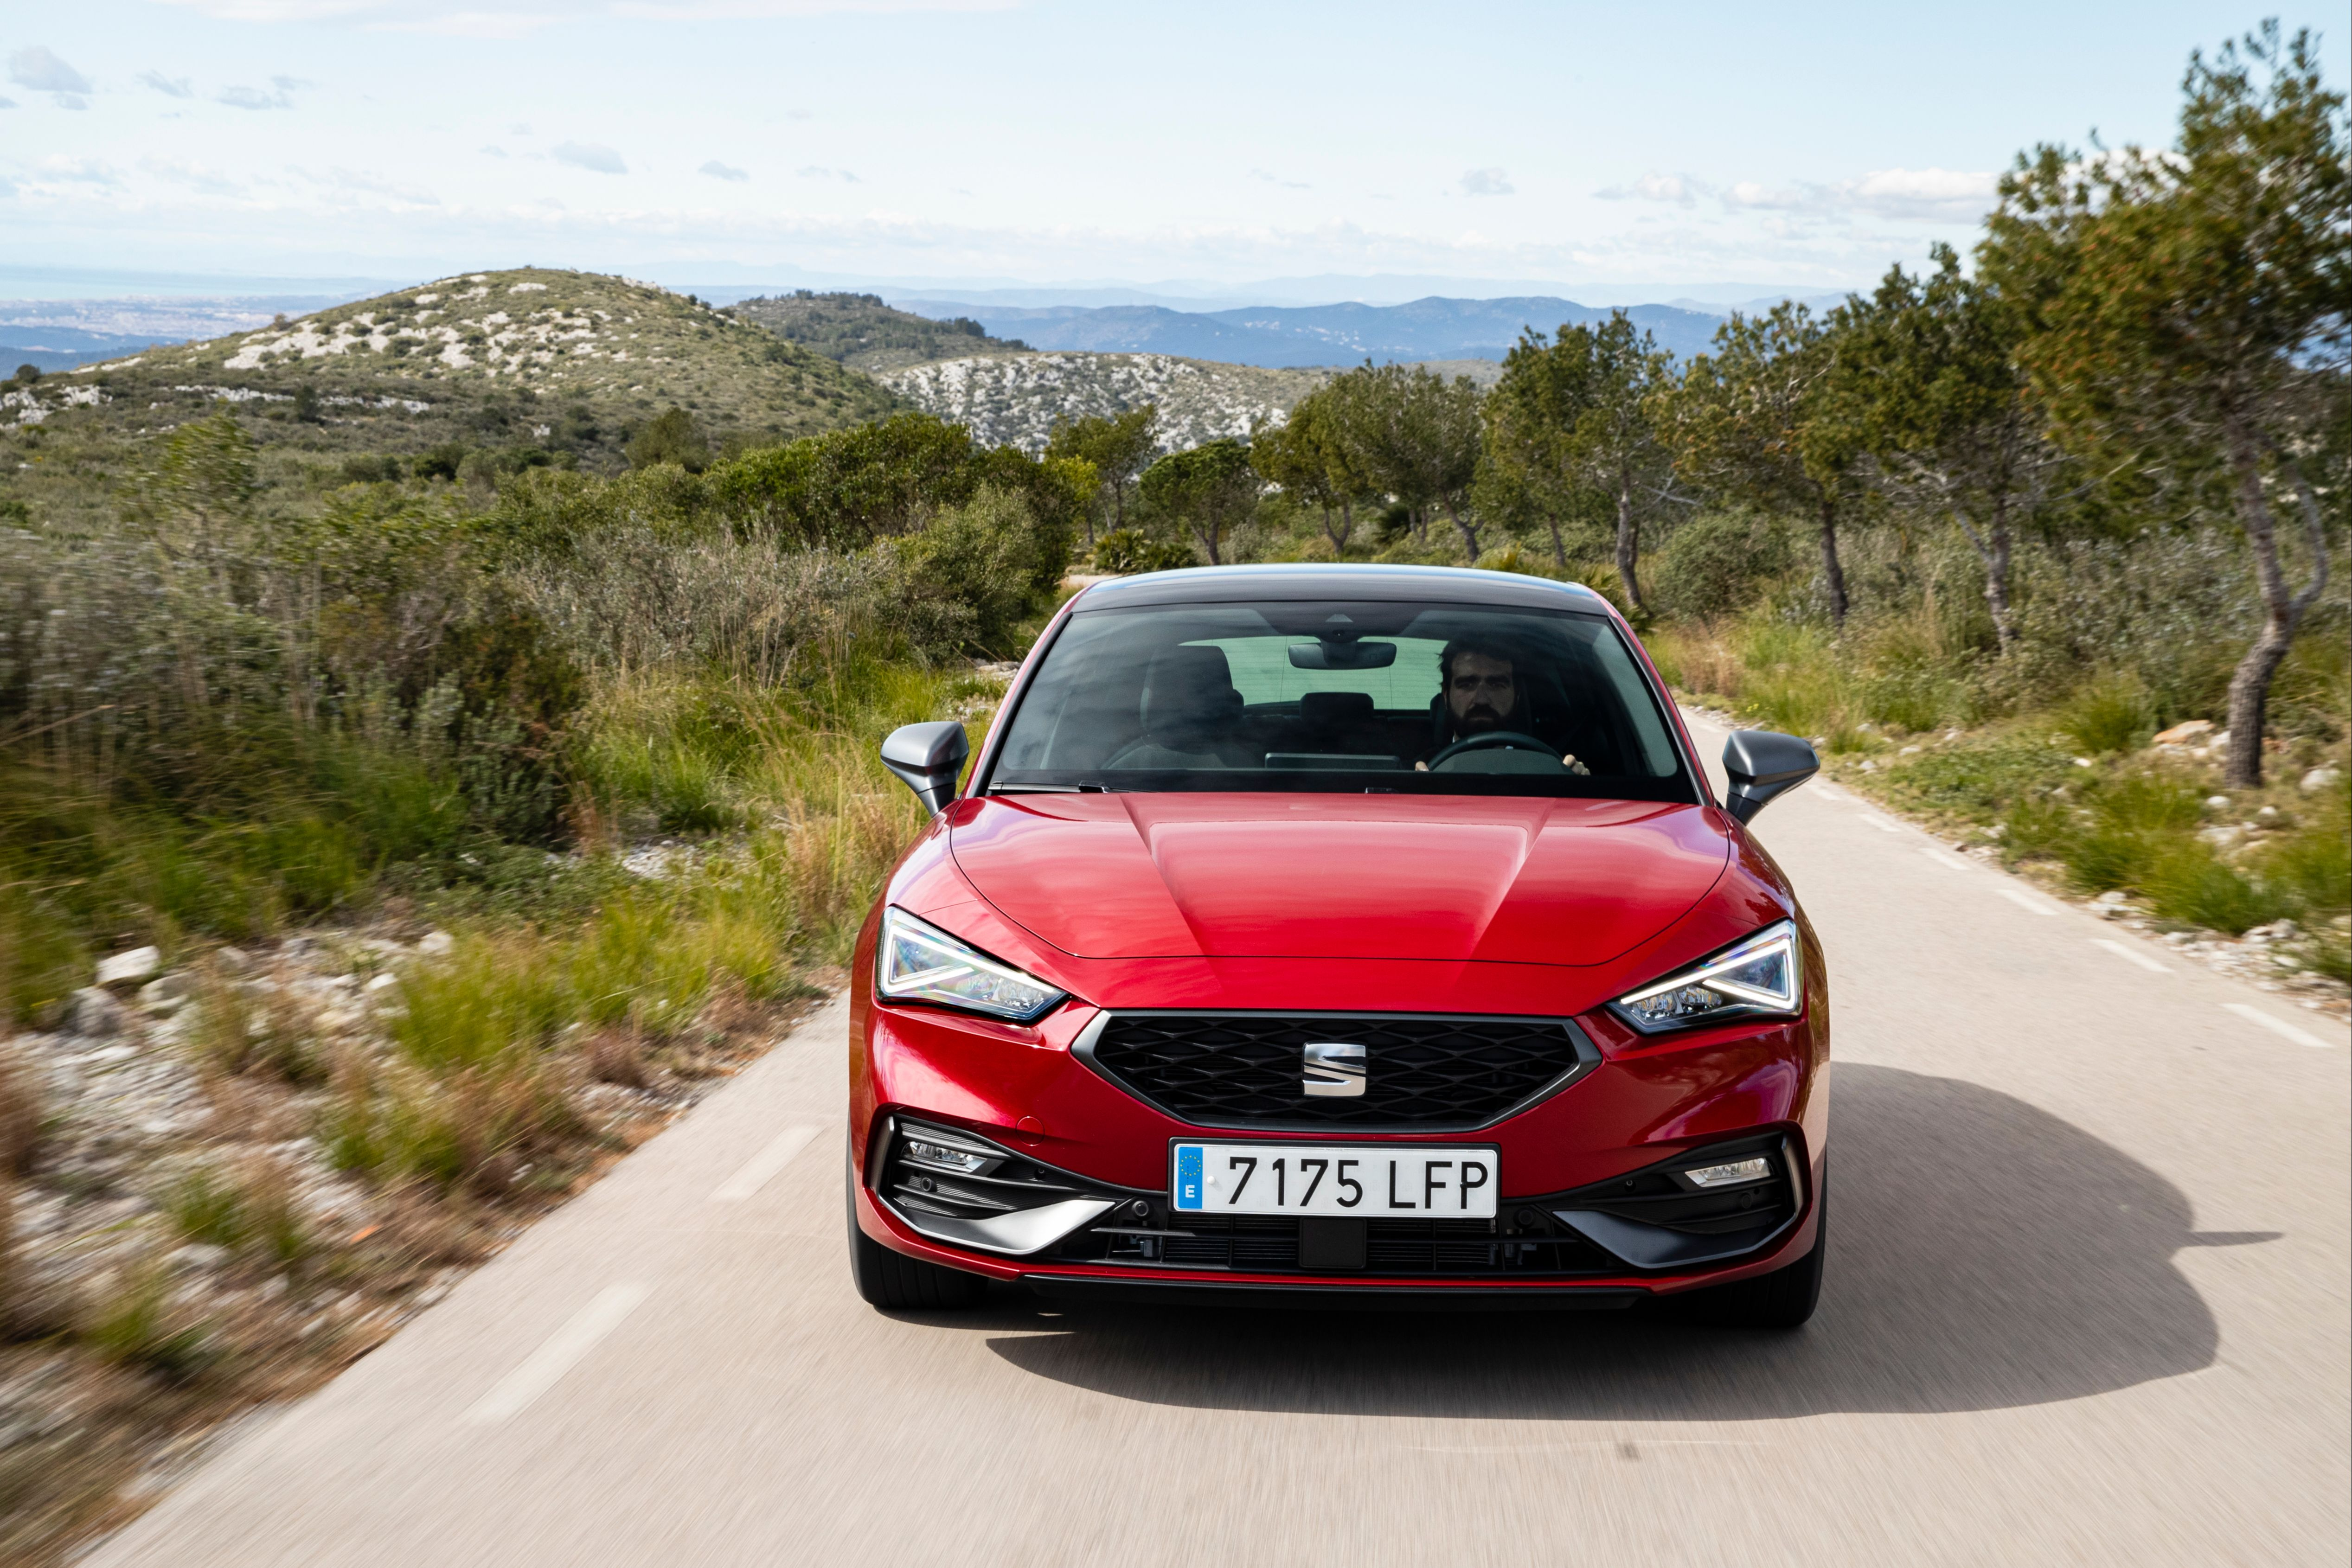 Front view of the New SEAT Leon